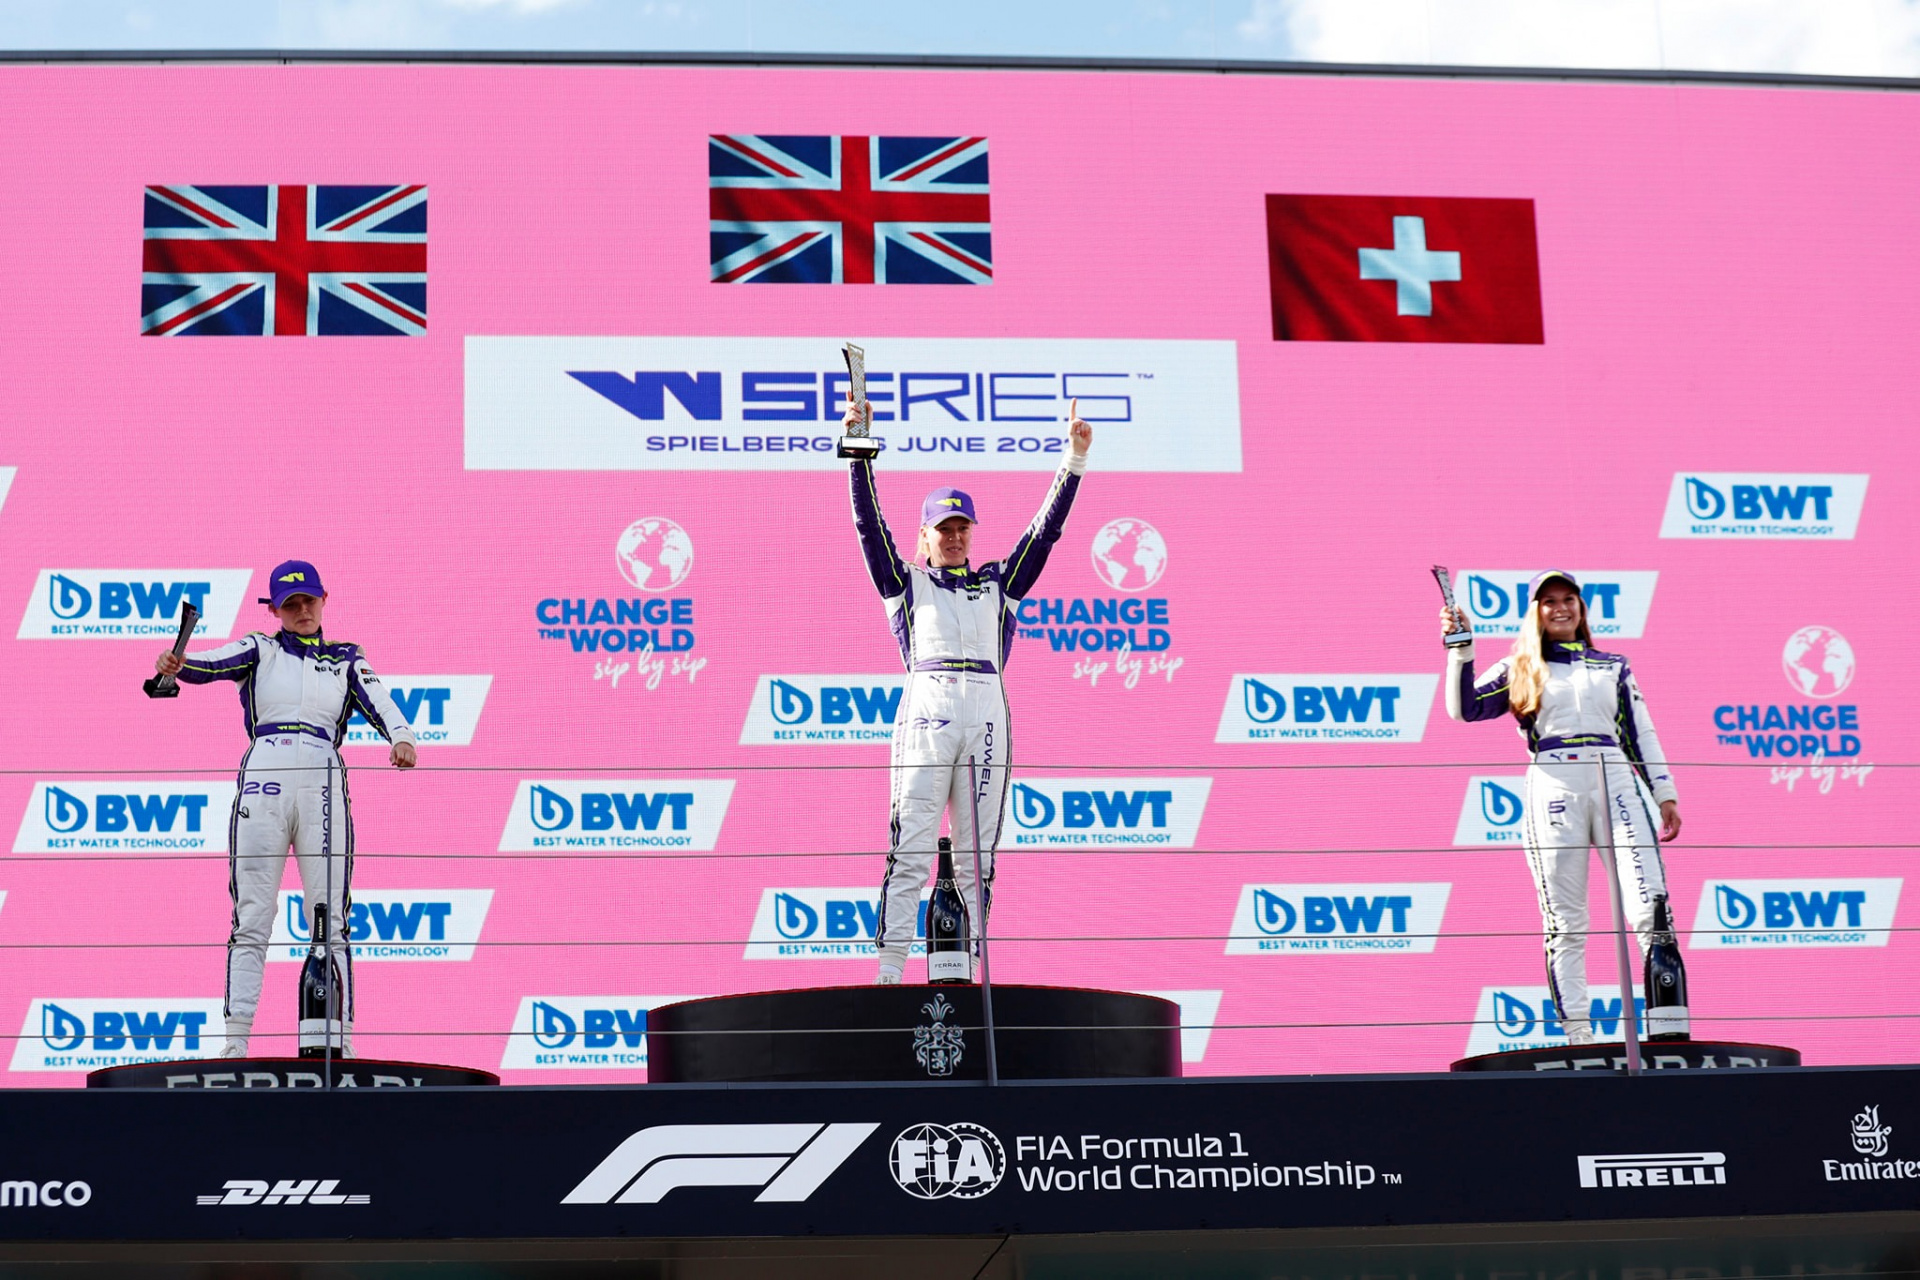 The W Series takes its place in the first weekend of the new season alongside F1